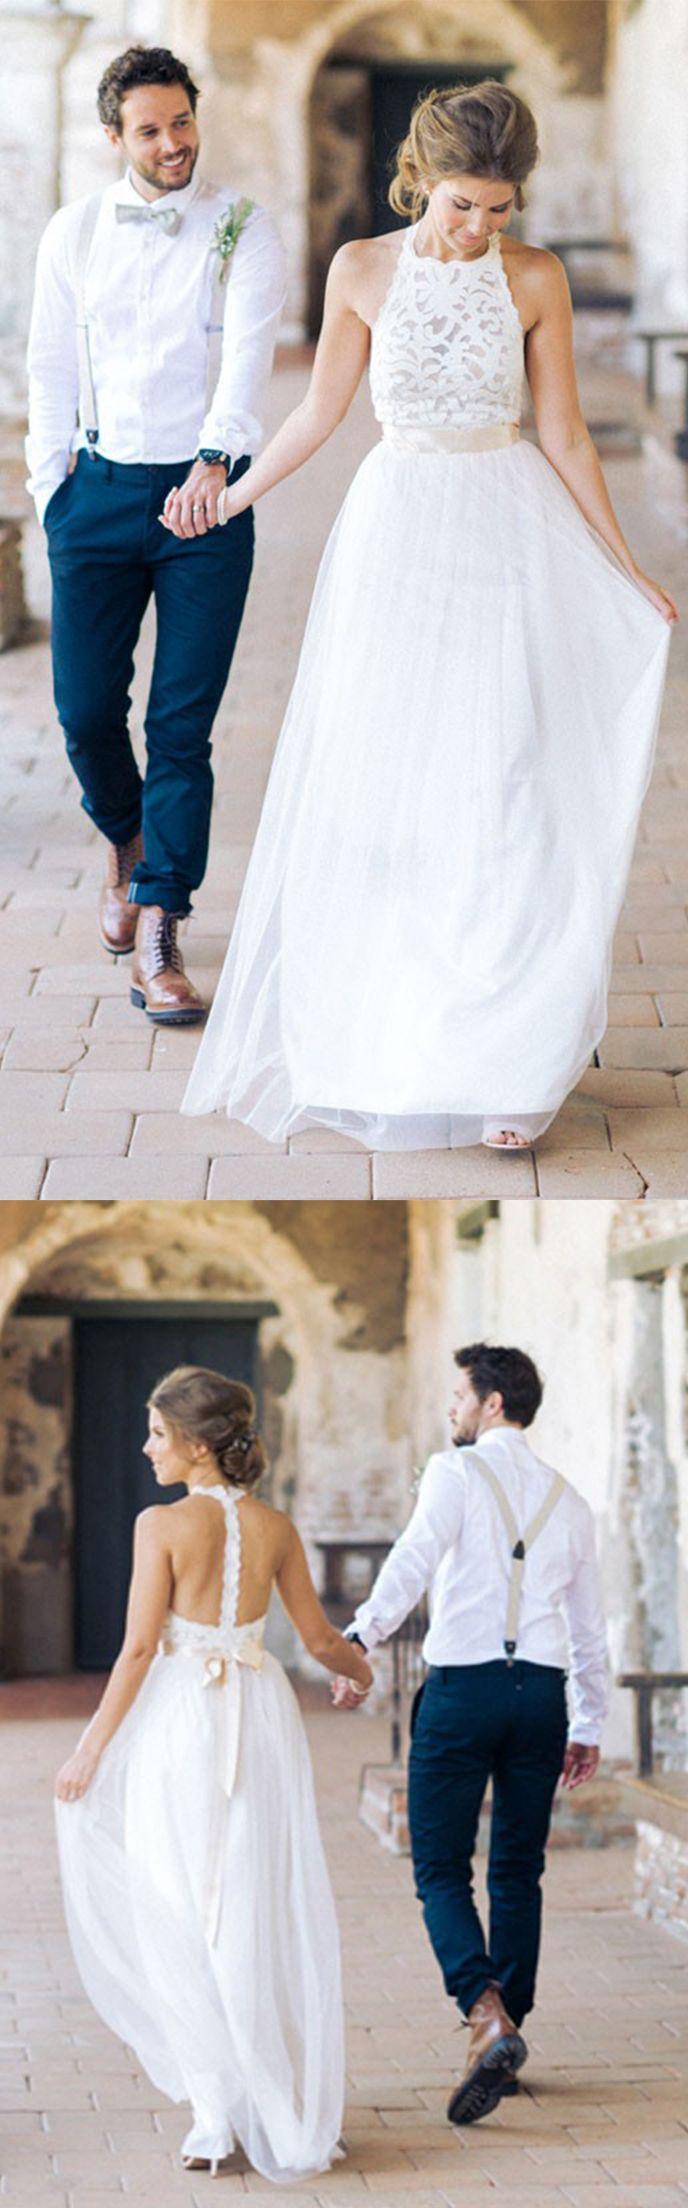 Best 25 groom outfit ideas on pinterest men wedding outfits simple jewel wedding dresses sleeveless long wedding dress lace top wedding dress white ombrellifo Images